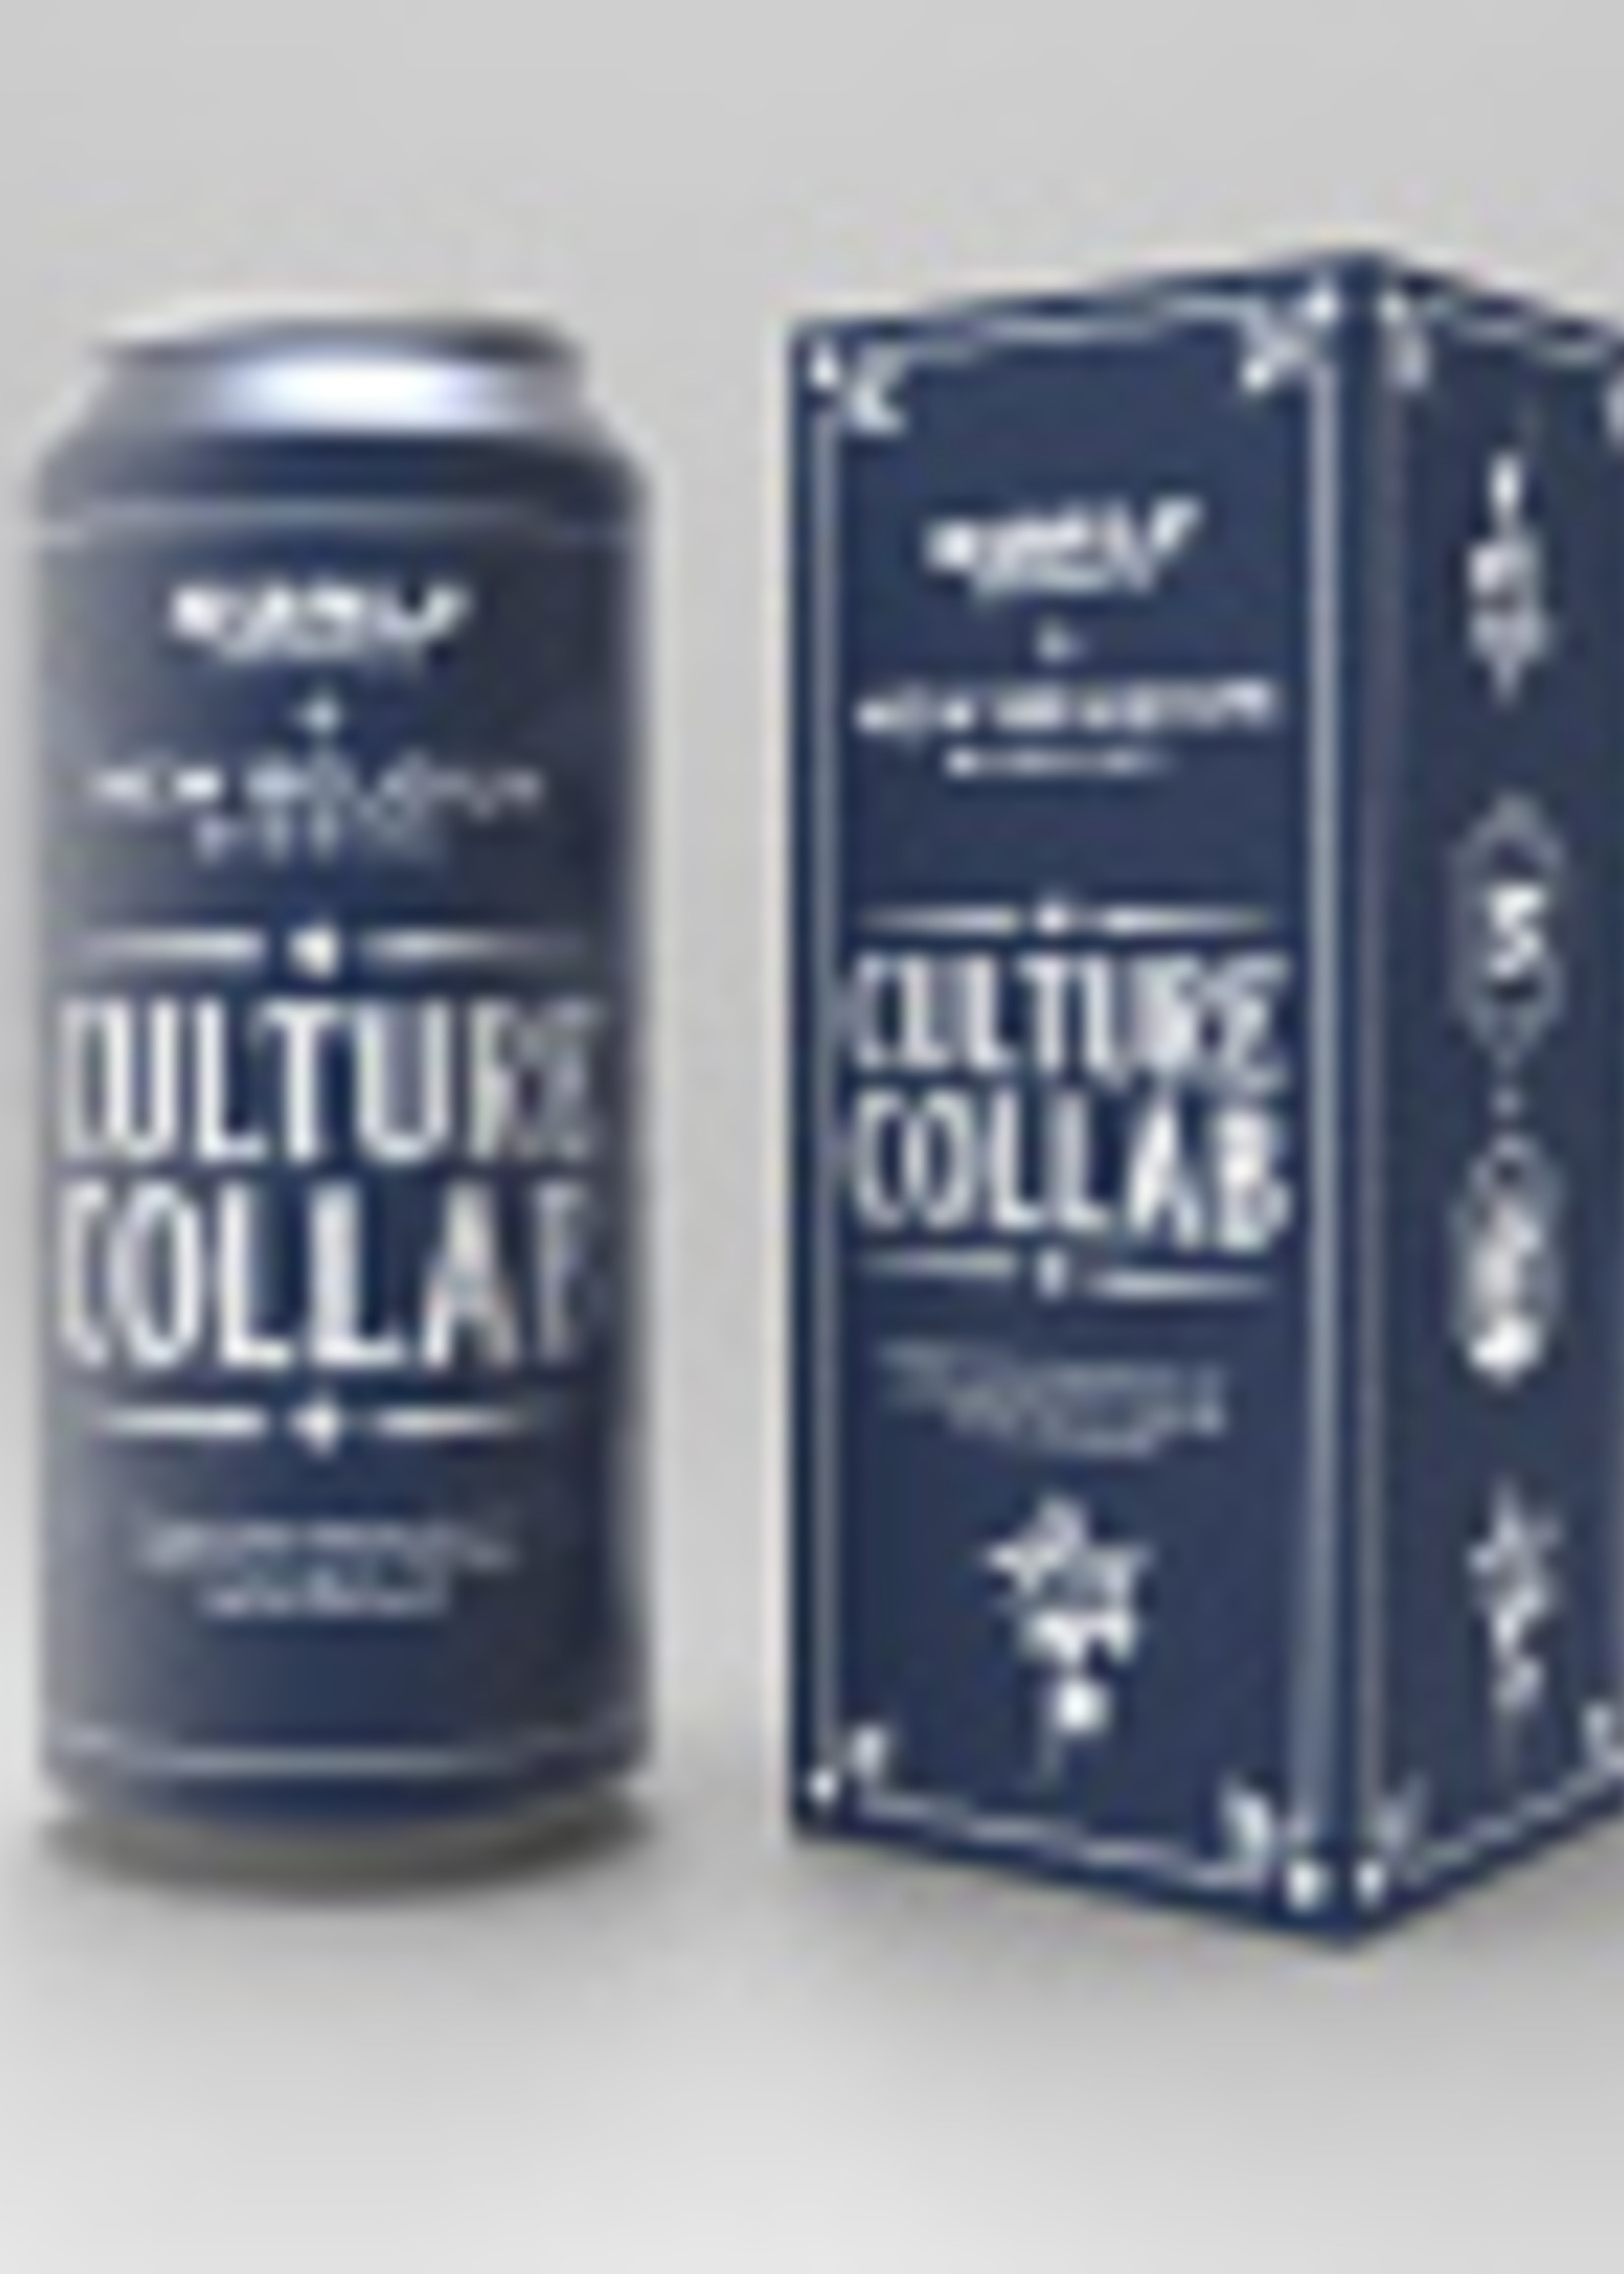 Surly Culture Collab - 1x16oz Can